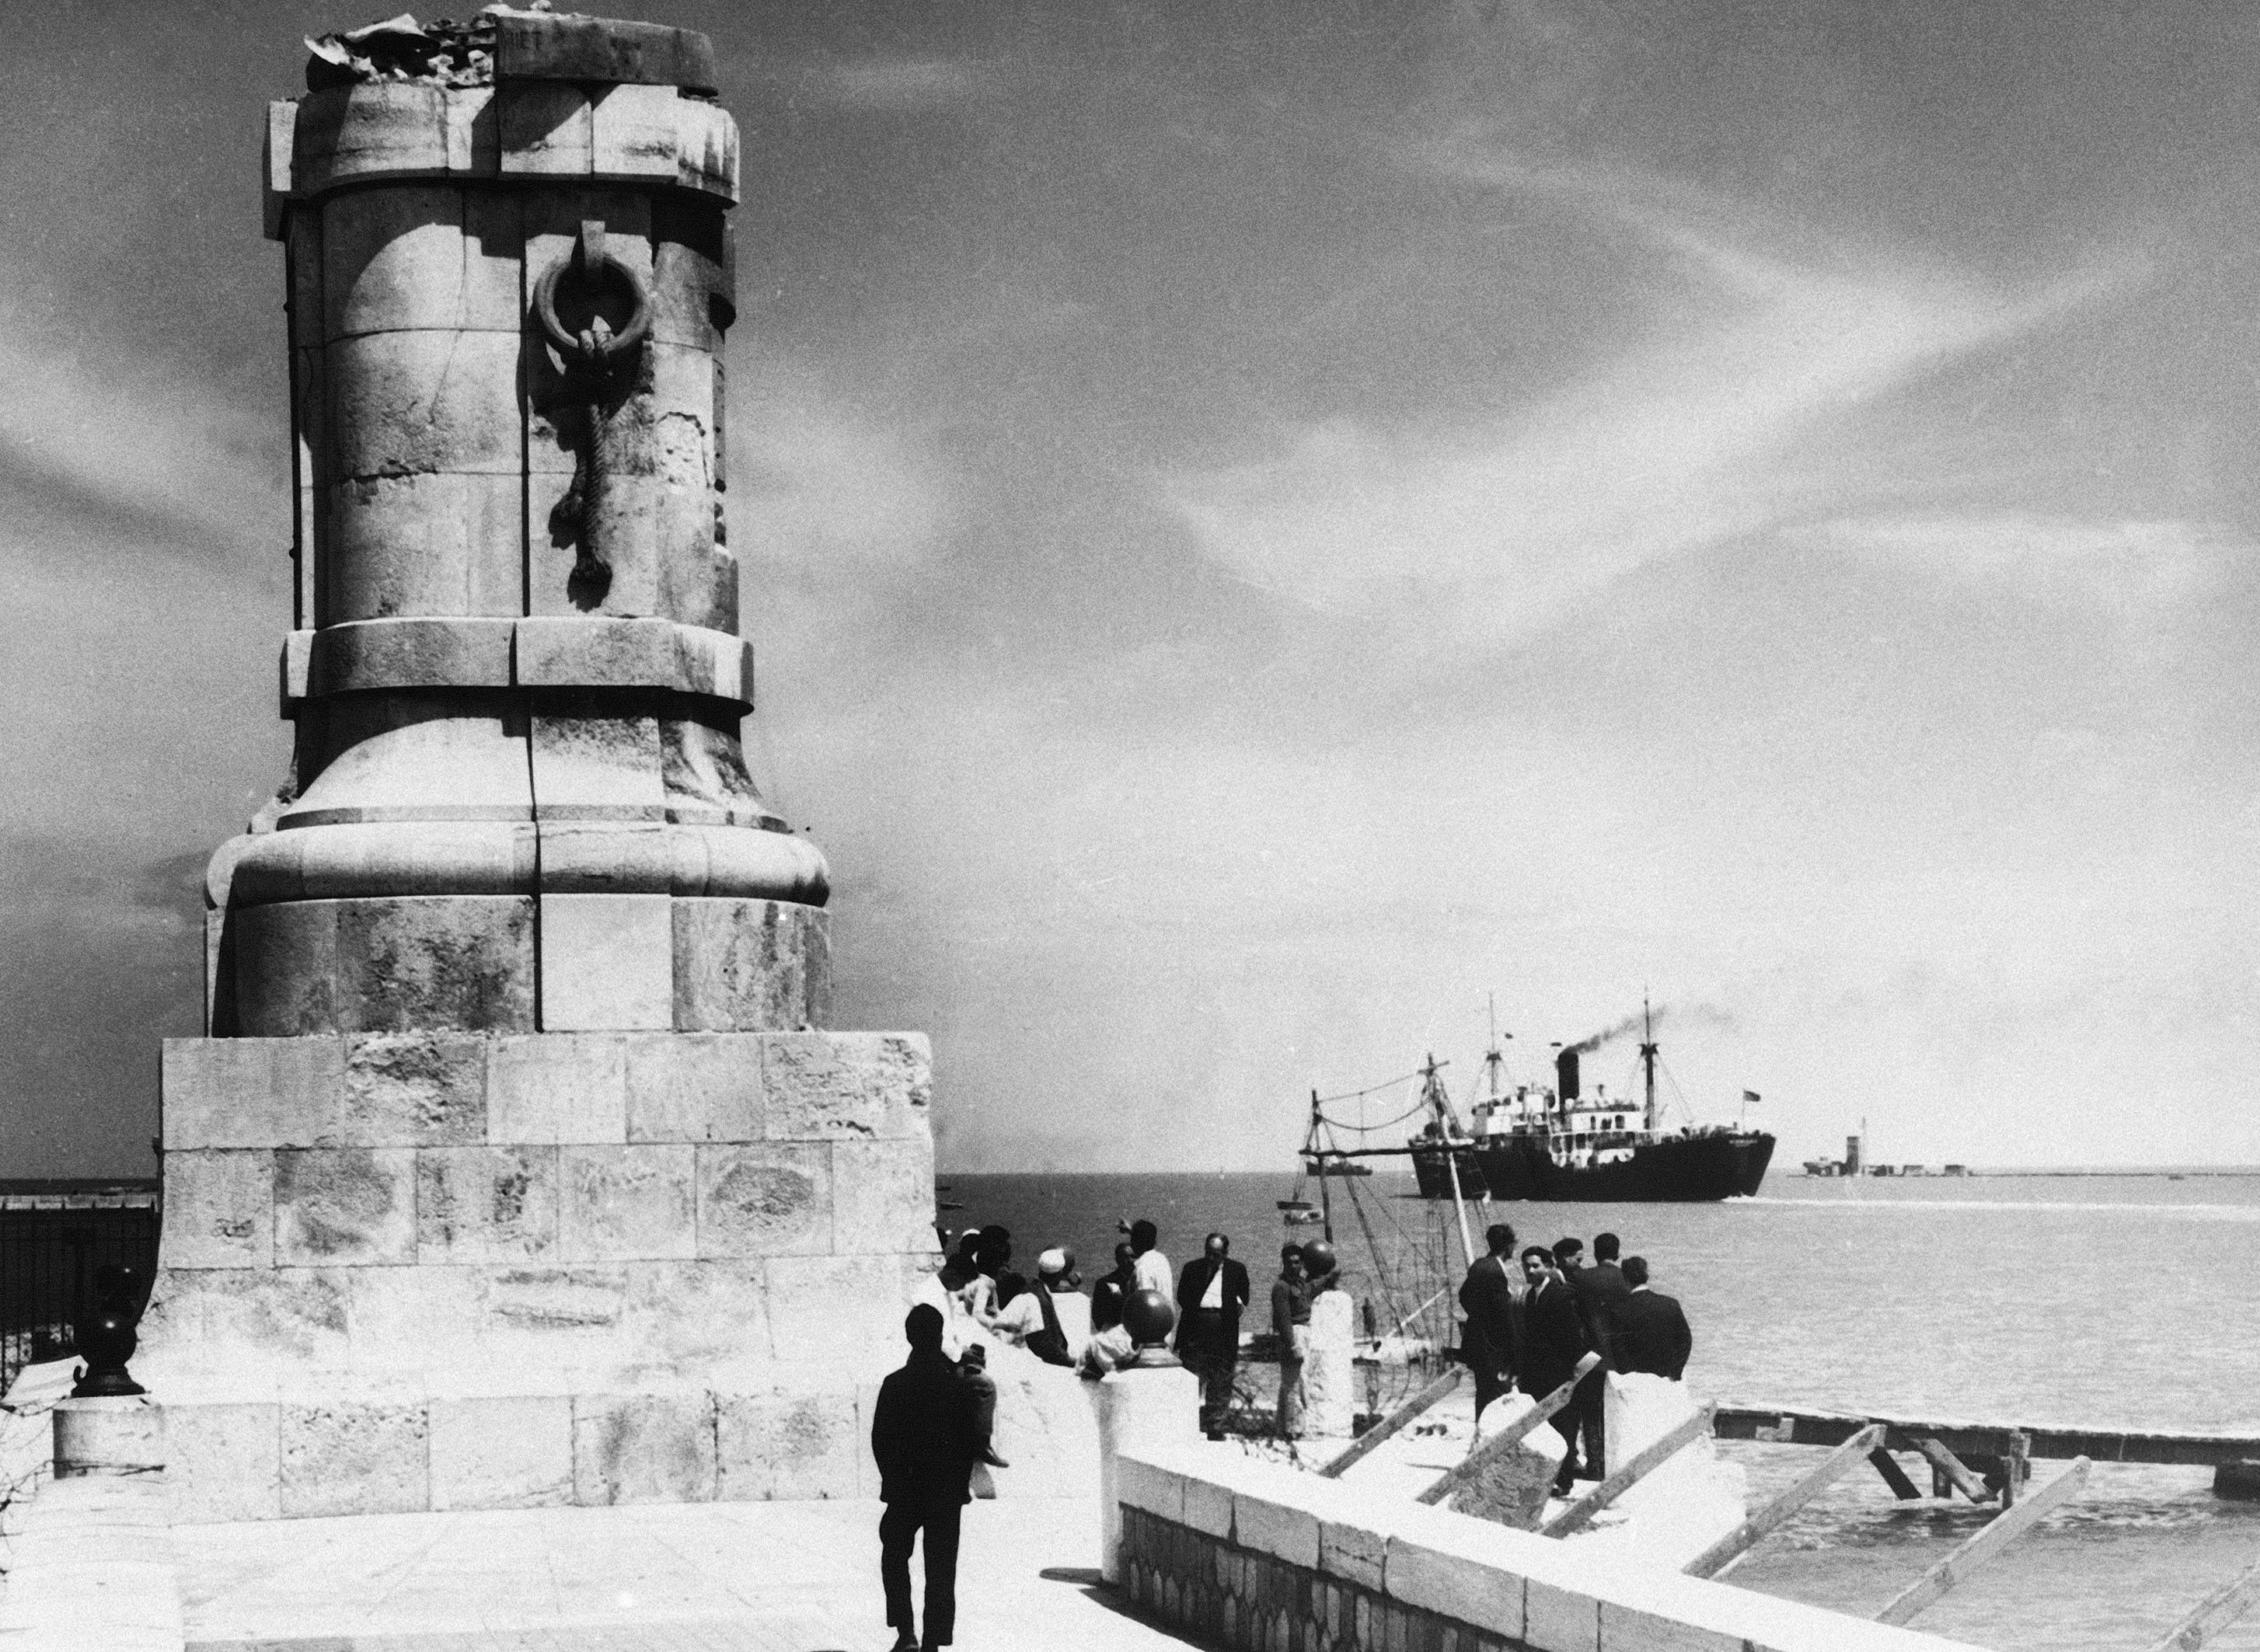 """FILE - This March 30, 1957 file photo, shows the base of the statue of Suez Canal builder Ferdinand de Lesseps is all that remains at Port Said, Egypt, after control of the canal was seized by Egyptian President Nasser in 1956. A proposal to bring back the statue has stirred controversy in Egypt with many saying it would be a salute to colonial times and a """"humiliation"""" to the memory of tens of thousands of Egyptian laborers who died while digging the waterway. The debate started when a newspaper reported in June 2020 that local authorities in the Mediterranean province of Port Said were thinking of returning the statue to where it once stood at the northern entrance of the canal. (AP Photo, File)"""